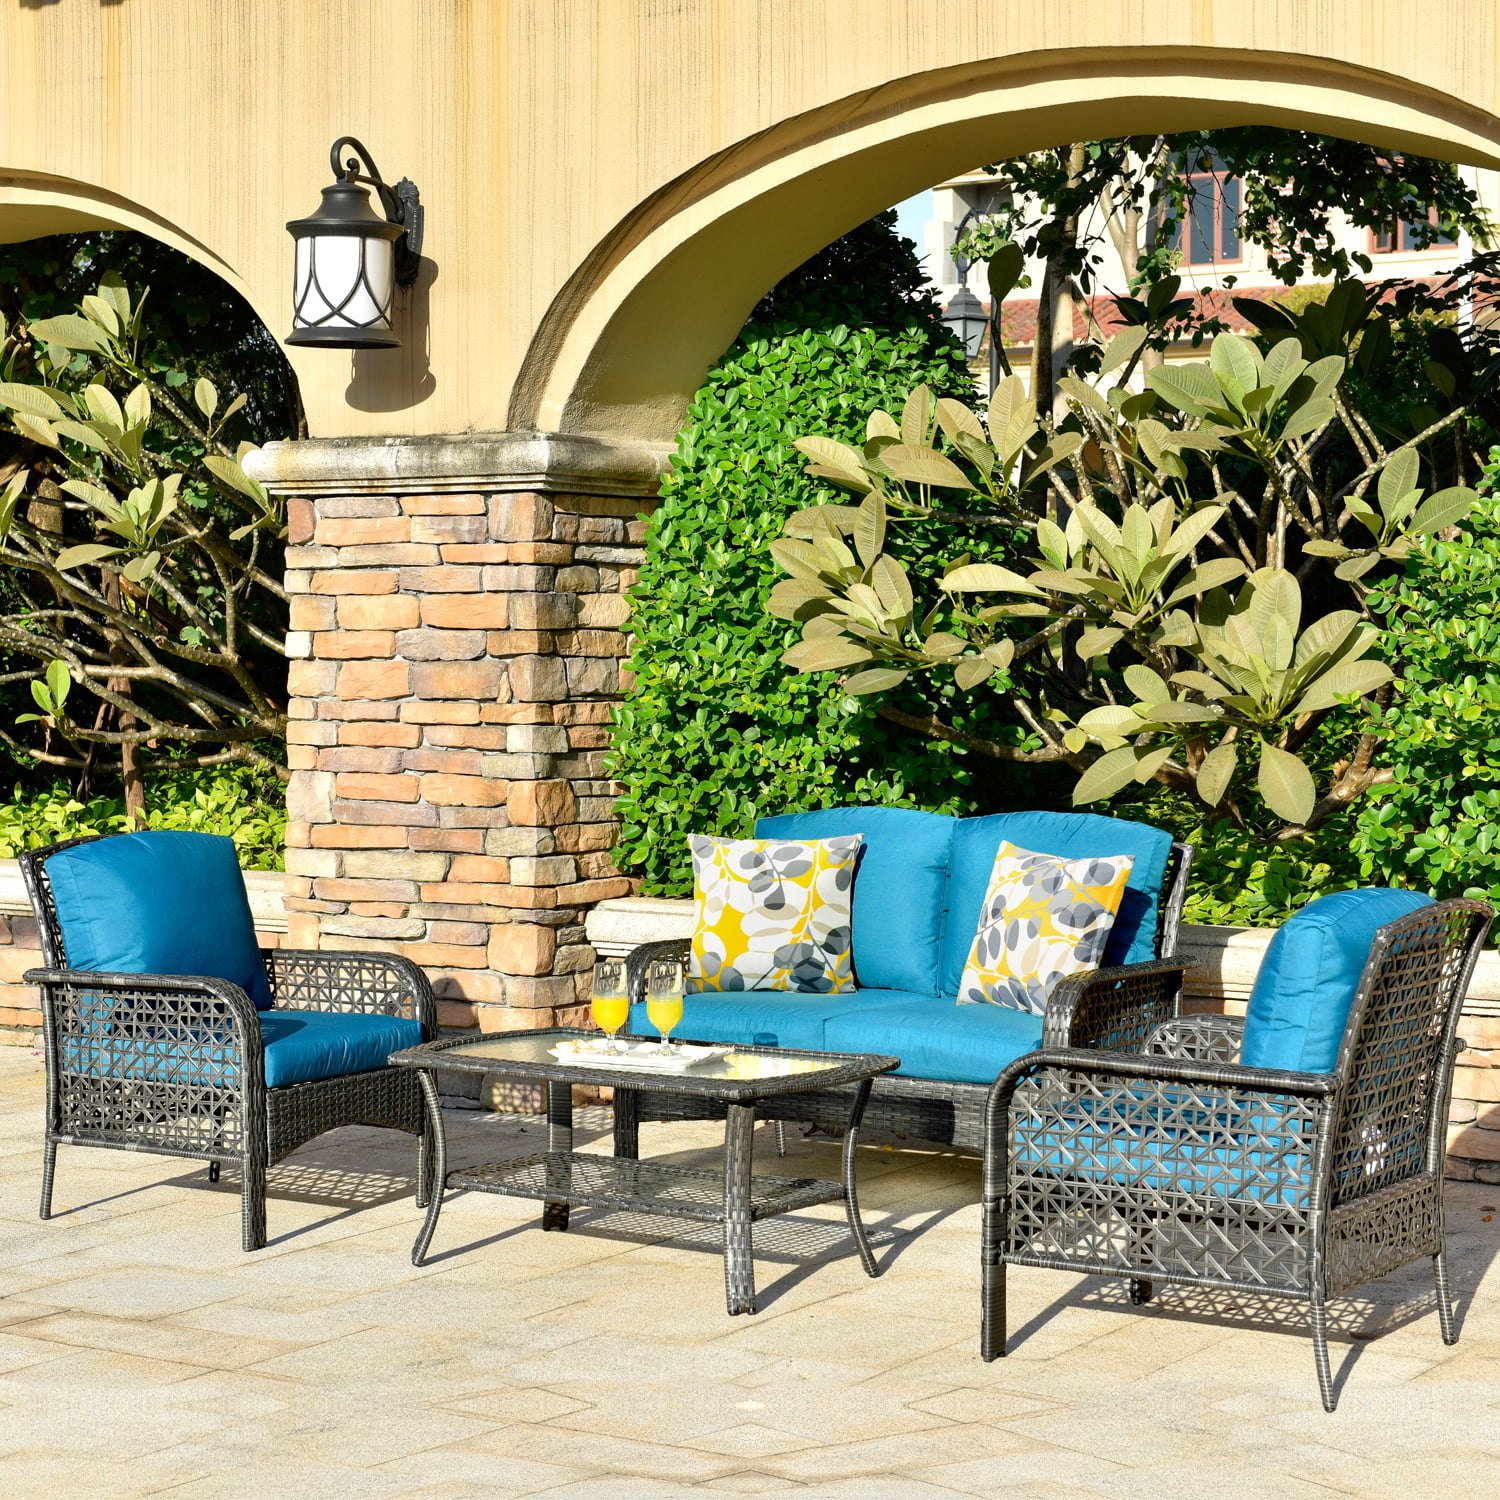 ovios 4 PCs Patio Furniture Sets All Weather Water ...